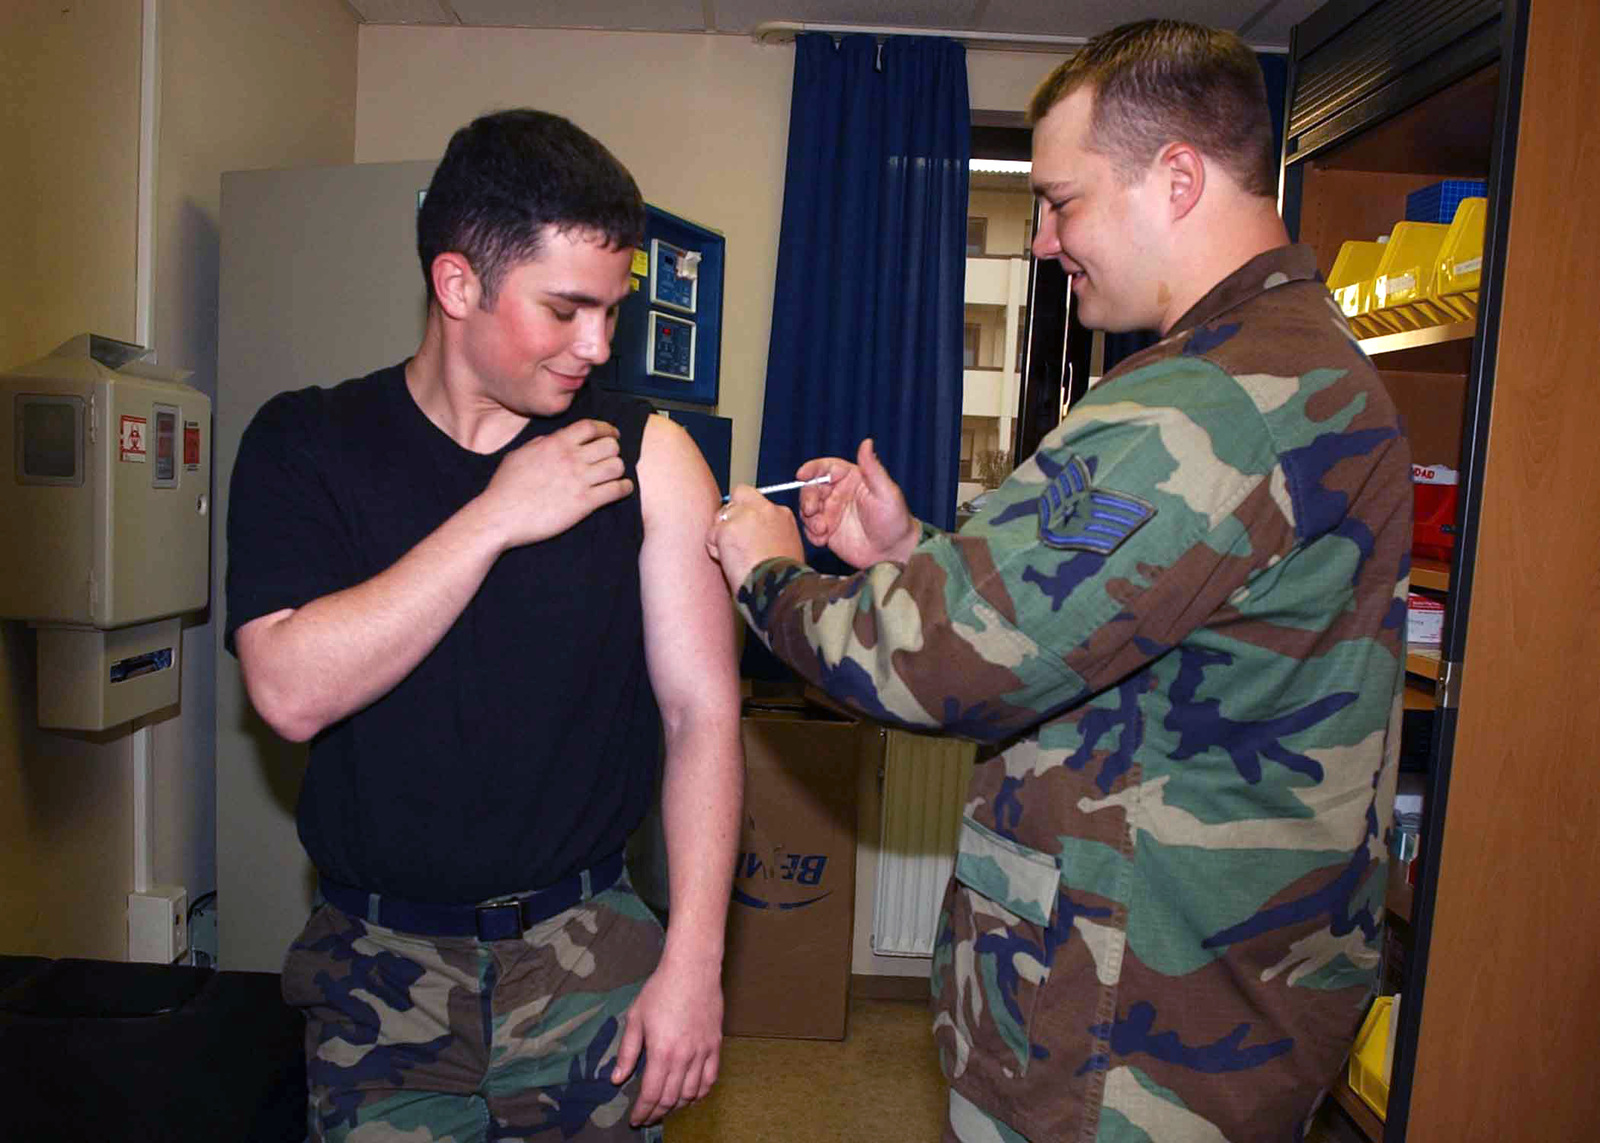 US Air Force (USAF) STAFF Sergeant (SSGT) Anthony L. Duranti, with the 52nd Medical Operations Squadron (MOS), injects SENIOR AIRMAN (SRA) Christopher P. Medaugh with an Influenza shot at the immunizations clinic at Spangdahlem Air Base (AB), Germany